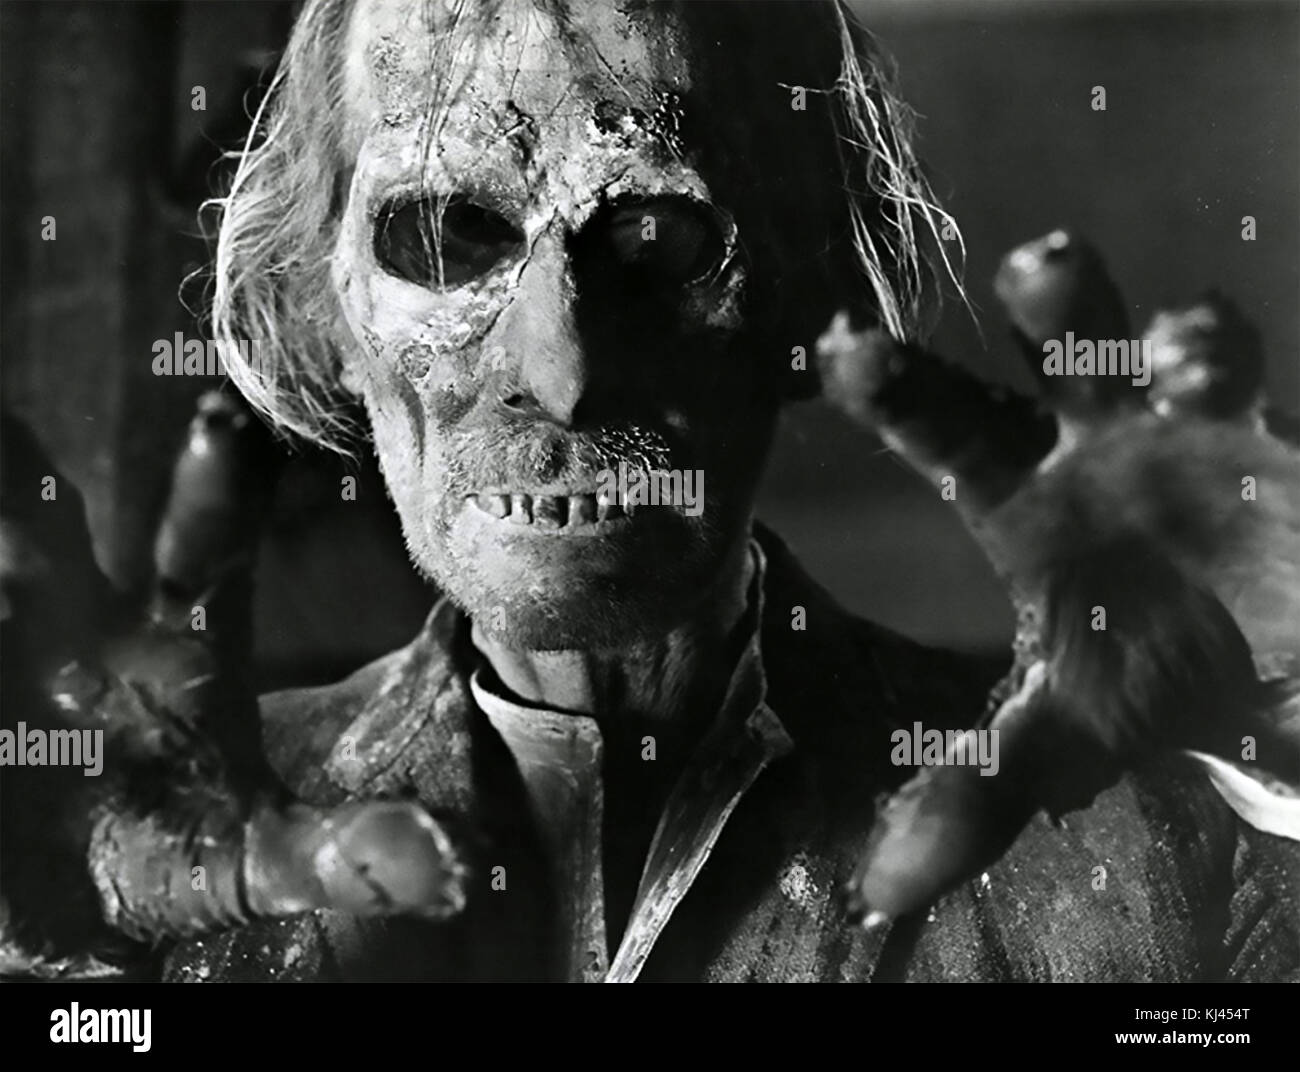 TALES FROM THE CRYPT 1972 MPC film with Peter Cushing - Stock Image